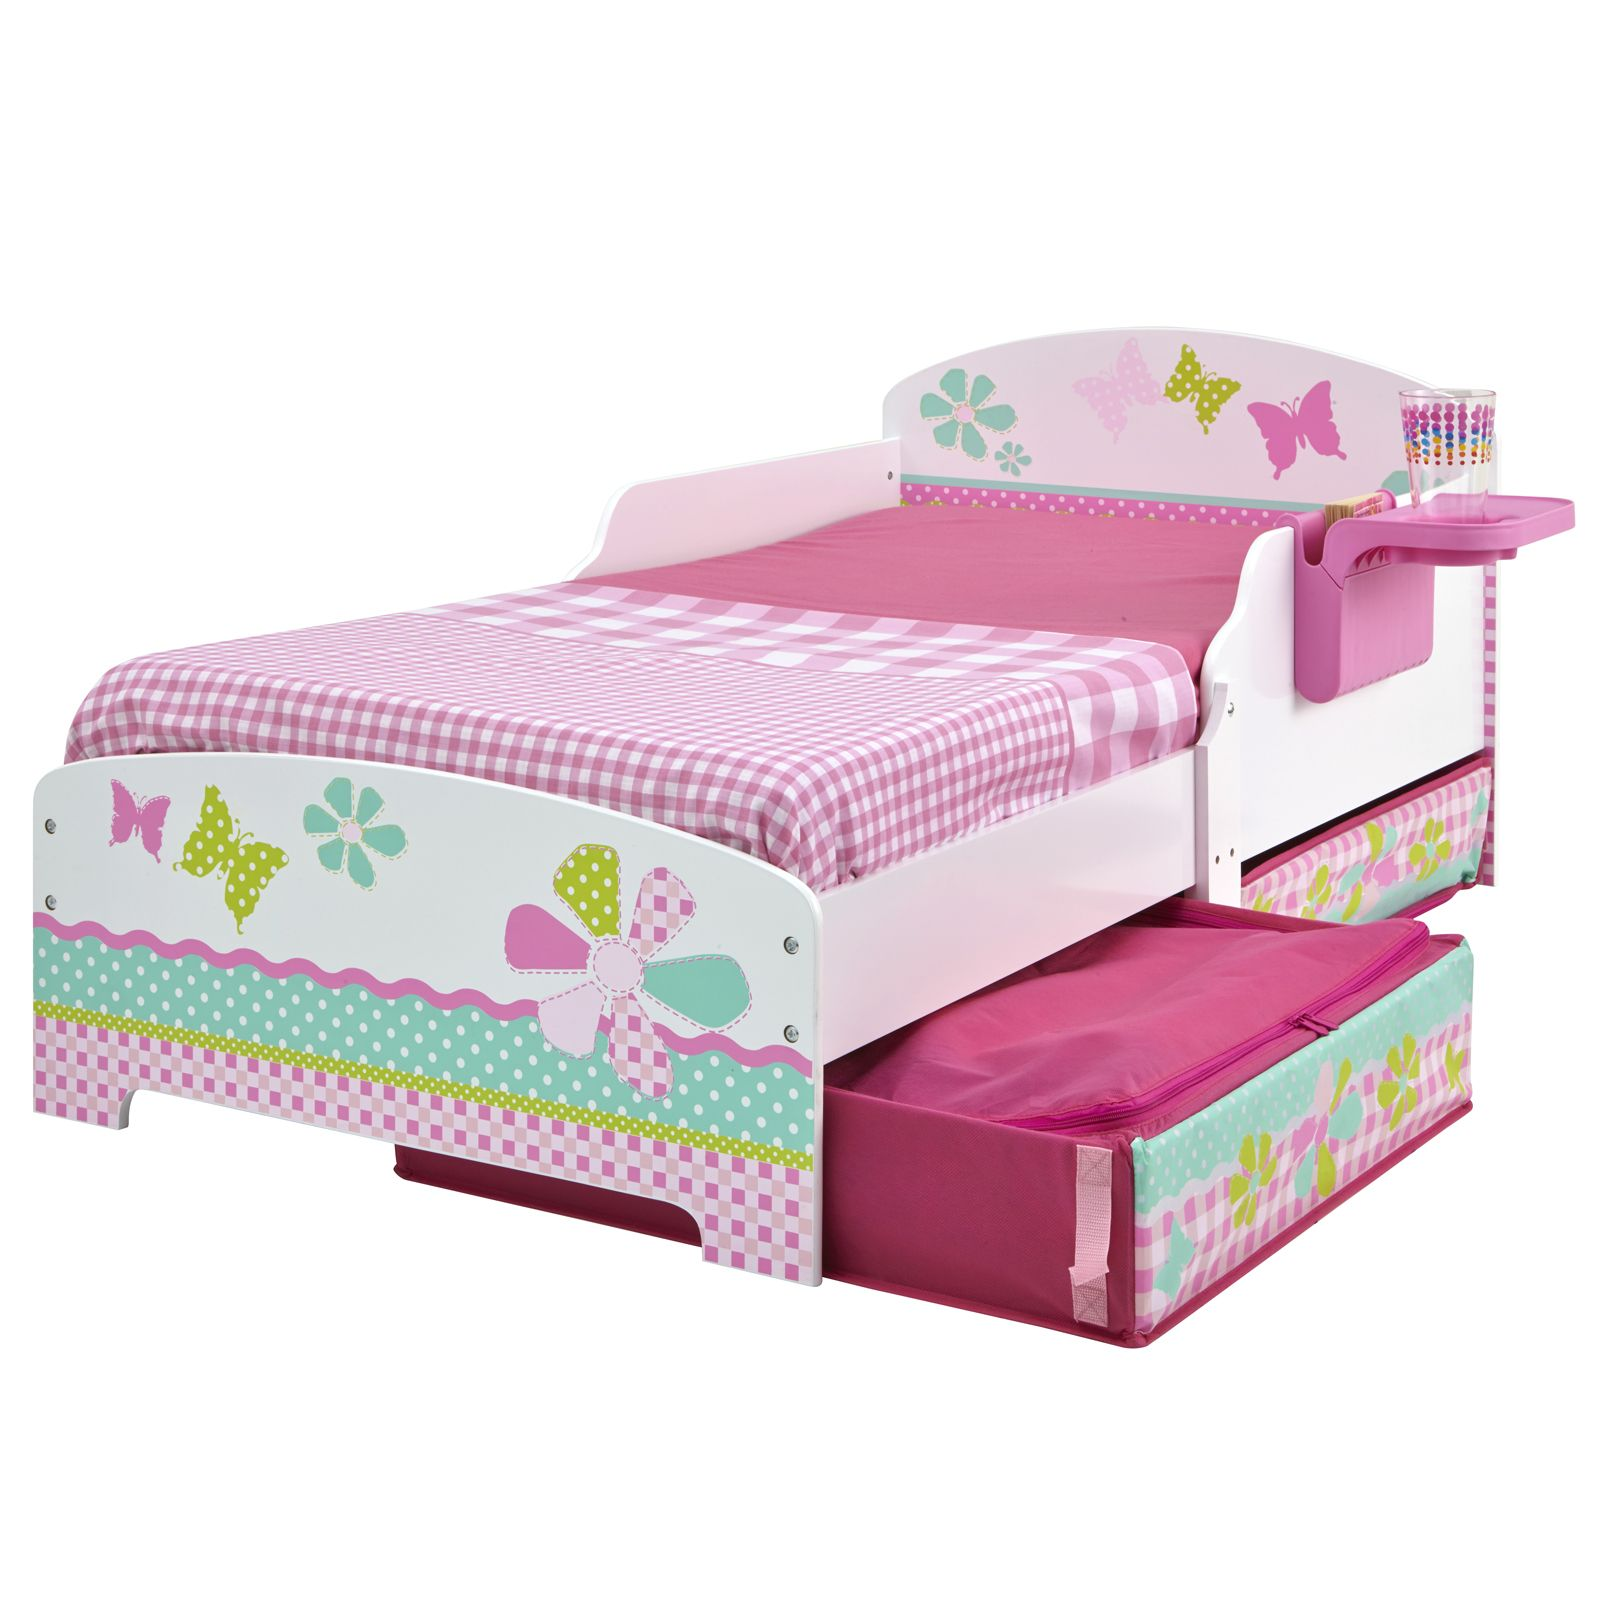 GIRLS FLOWERS Amp BUTTERFLIES PATCHWORK TODDLER BED WITH